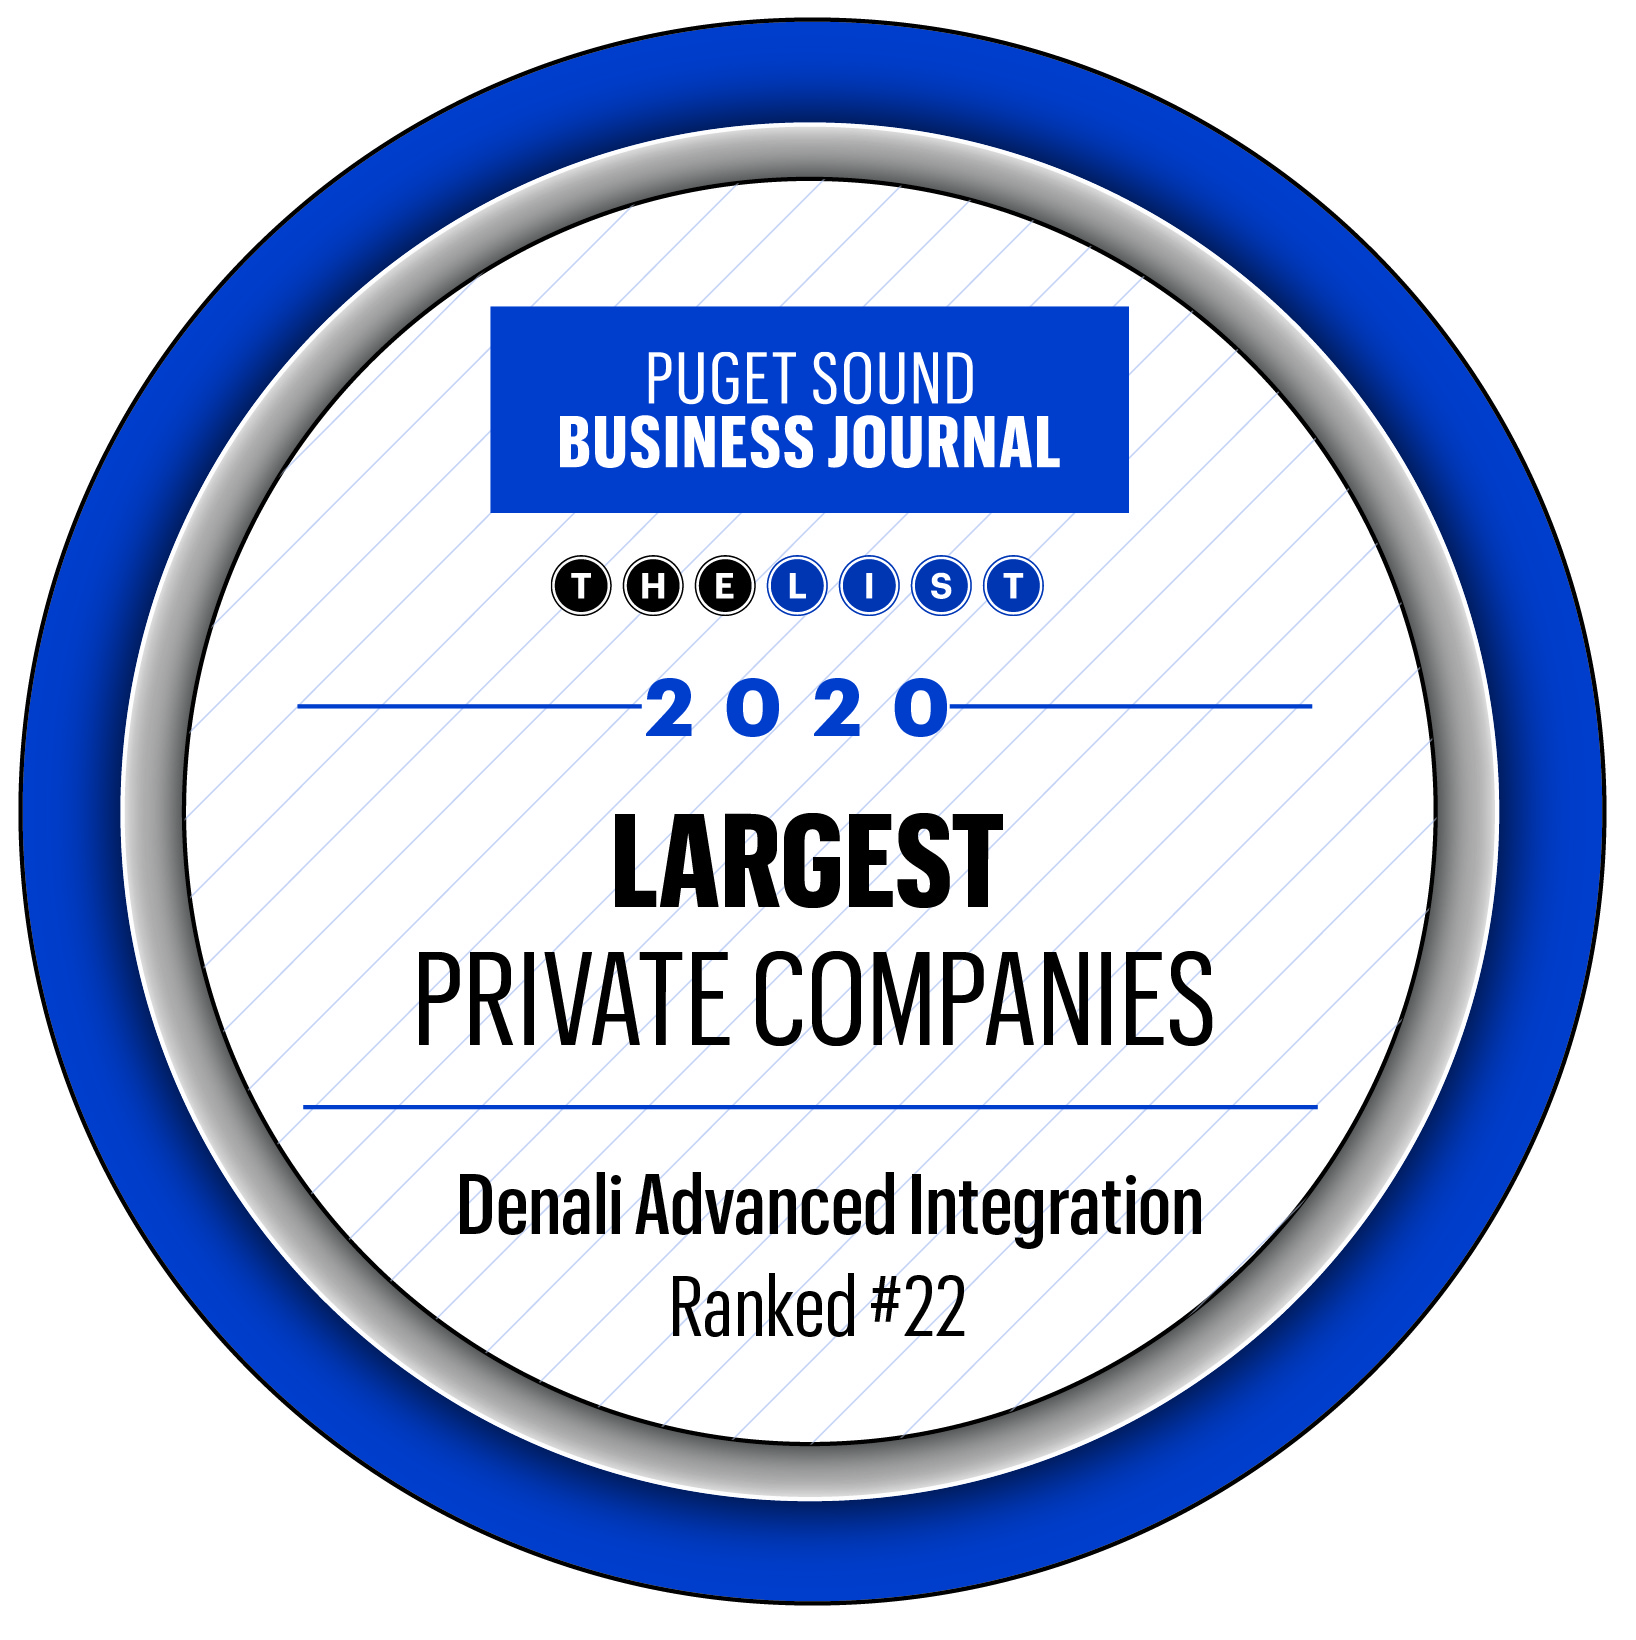 Denali Advanced Integration Named to Largest Private Companies List